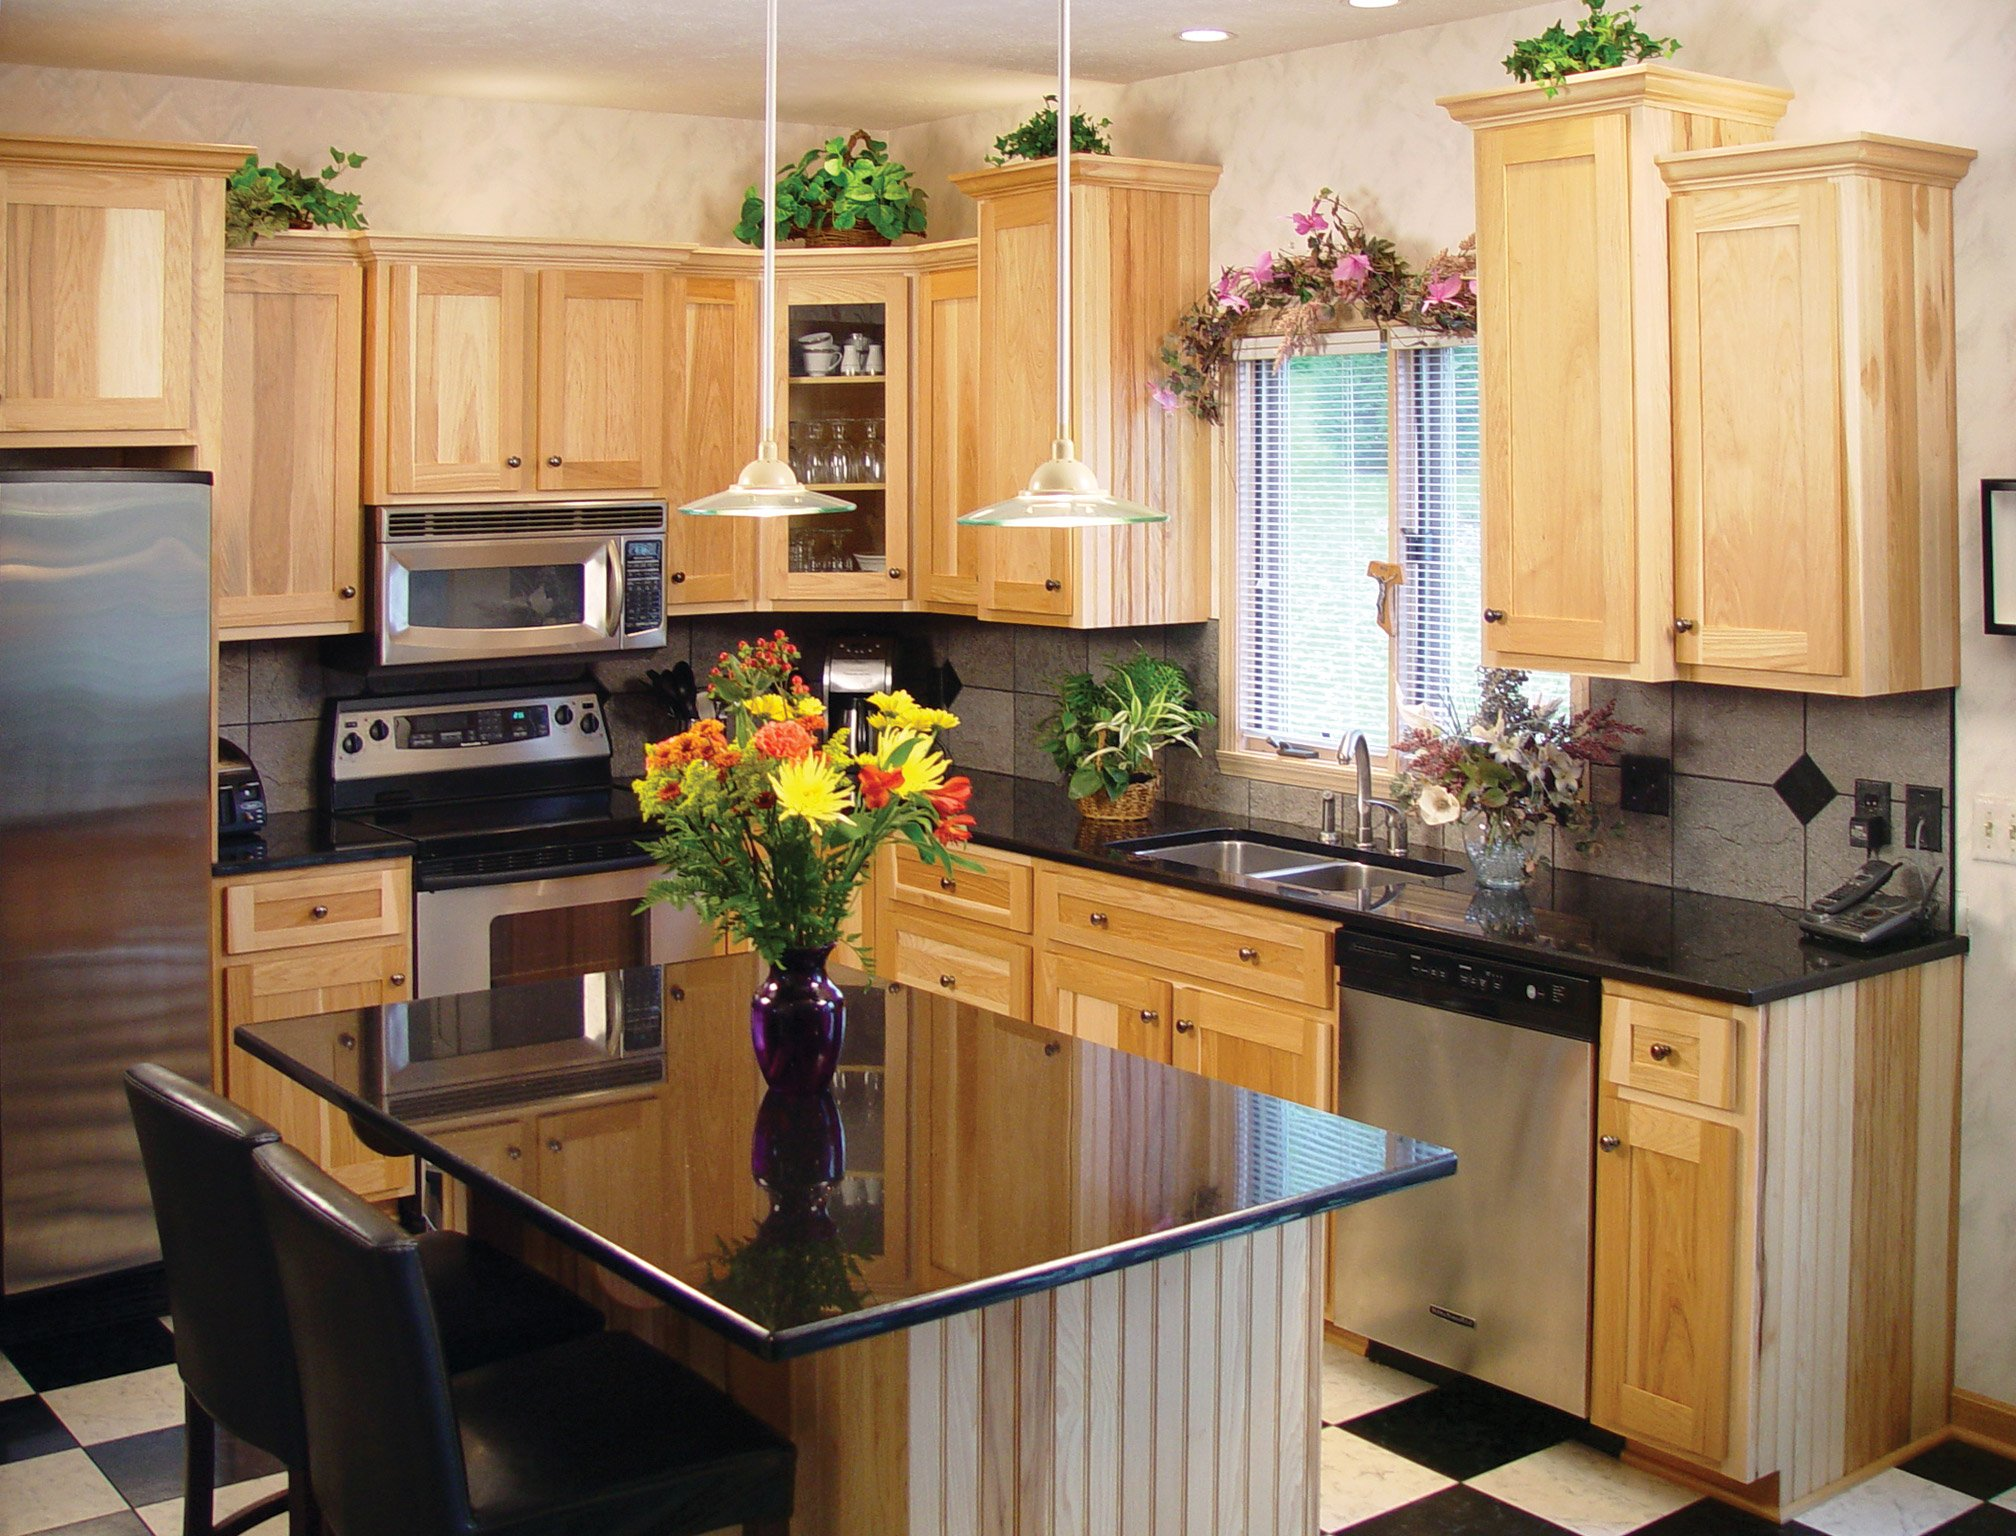 Flowers in a vase on an island in a refaced kitchen